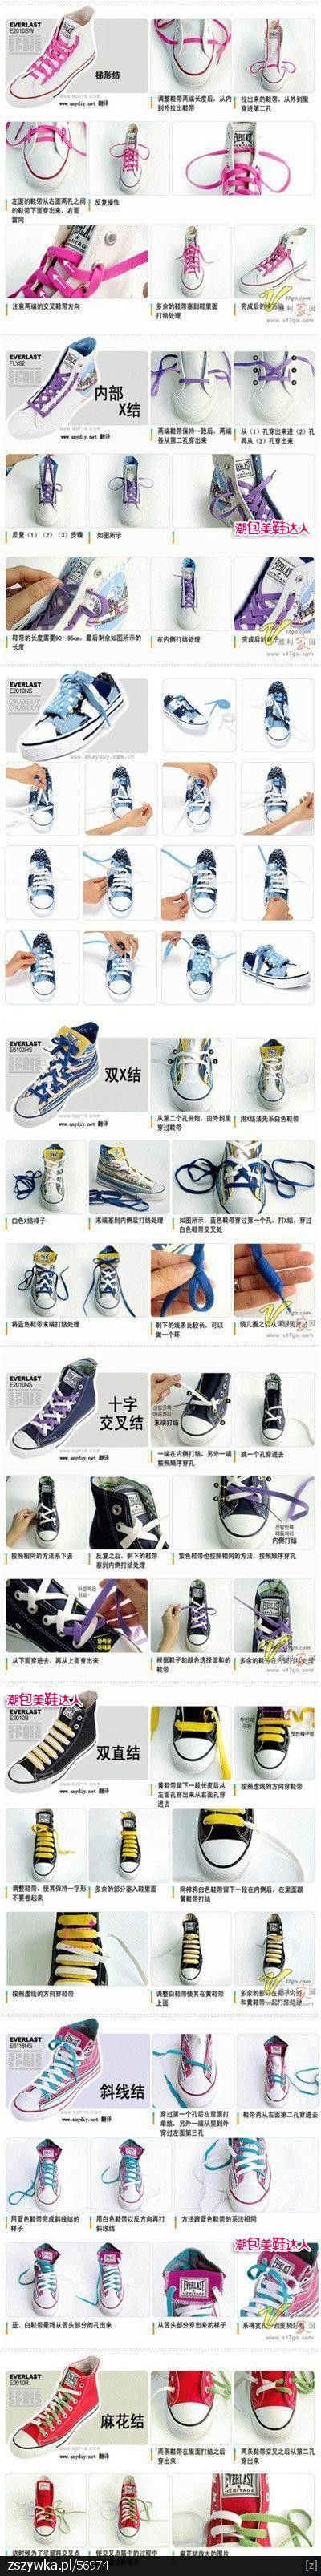 trampki: Shoelace Style, Kids Stuff, Clothing, Ties, Conver, 帆布鞋 一定, Kategorii Diy, Winter Boots, Cool Shoes Lace